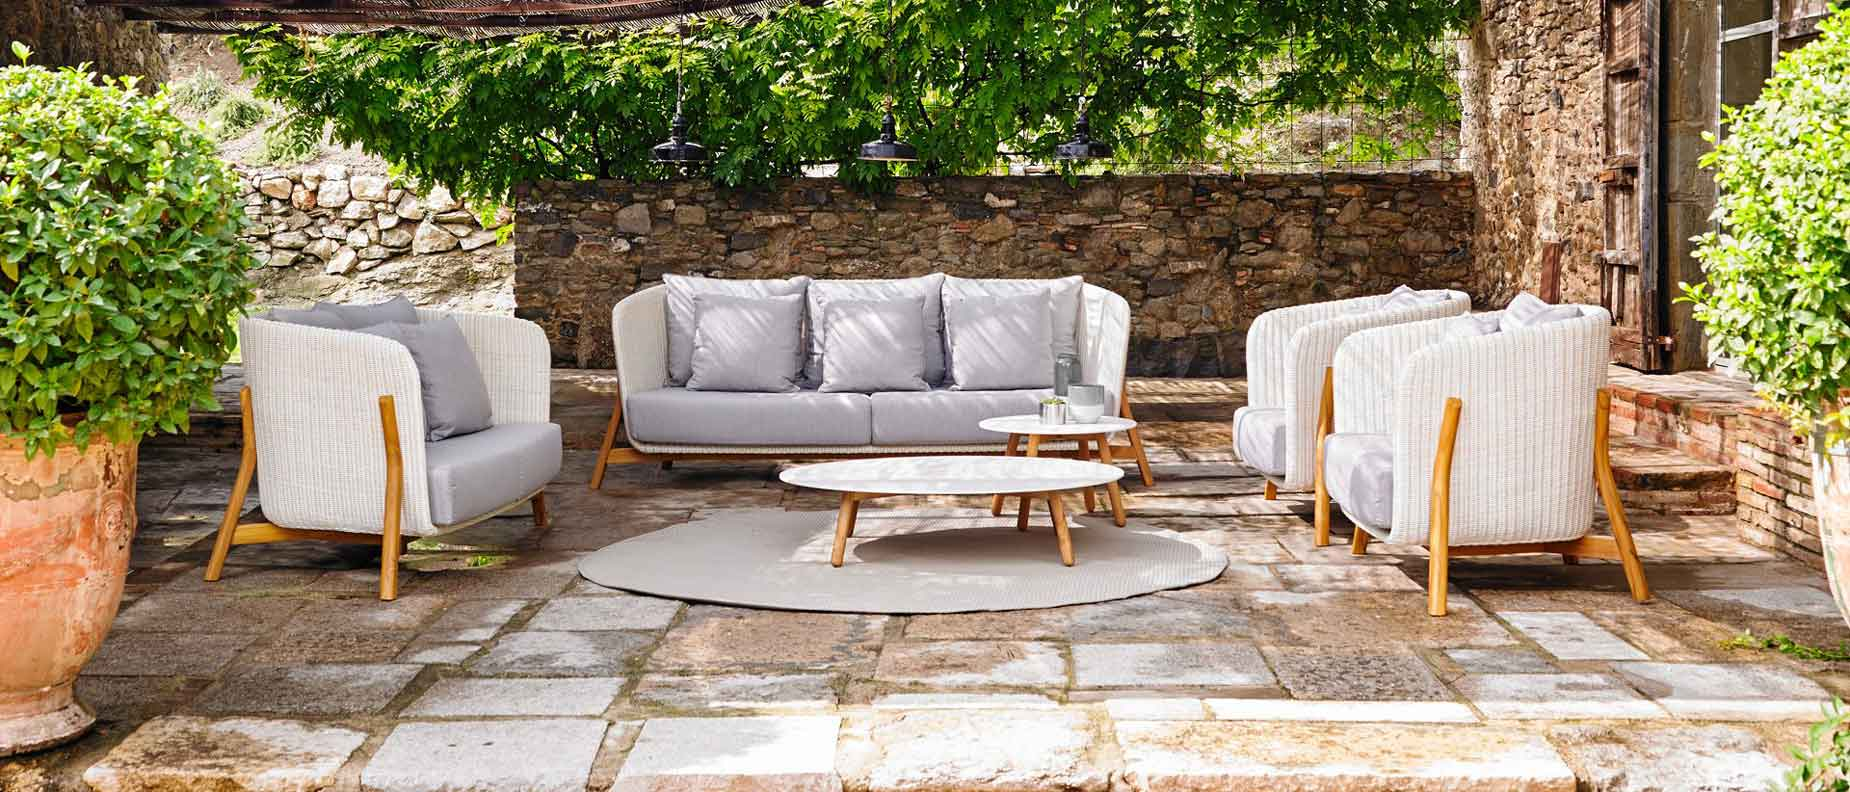 Exterior Furniture in the Algarve